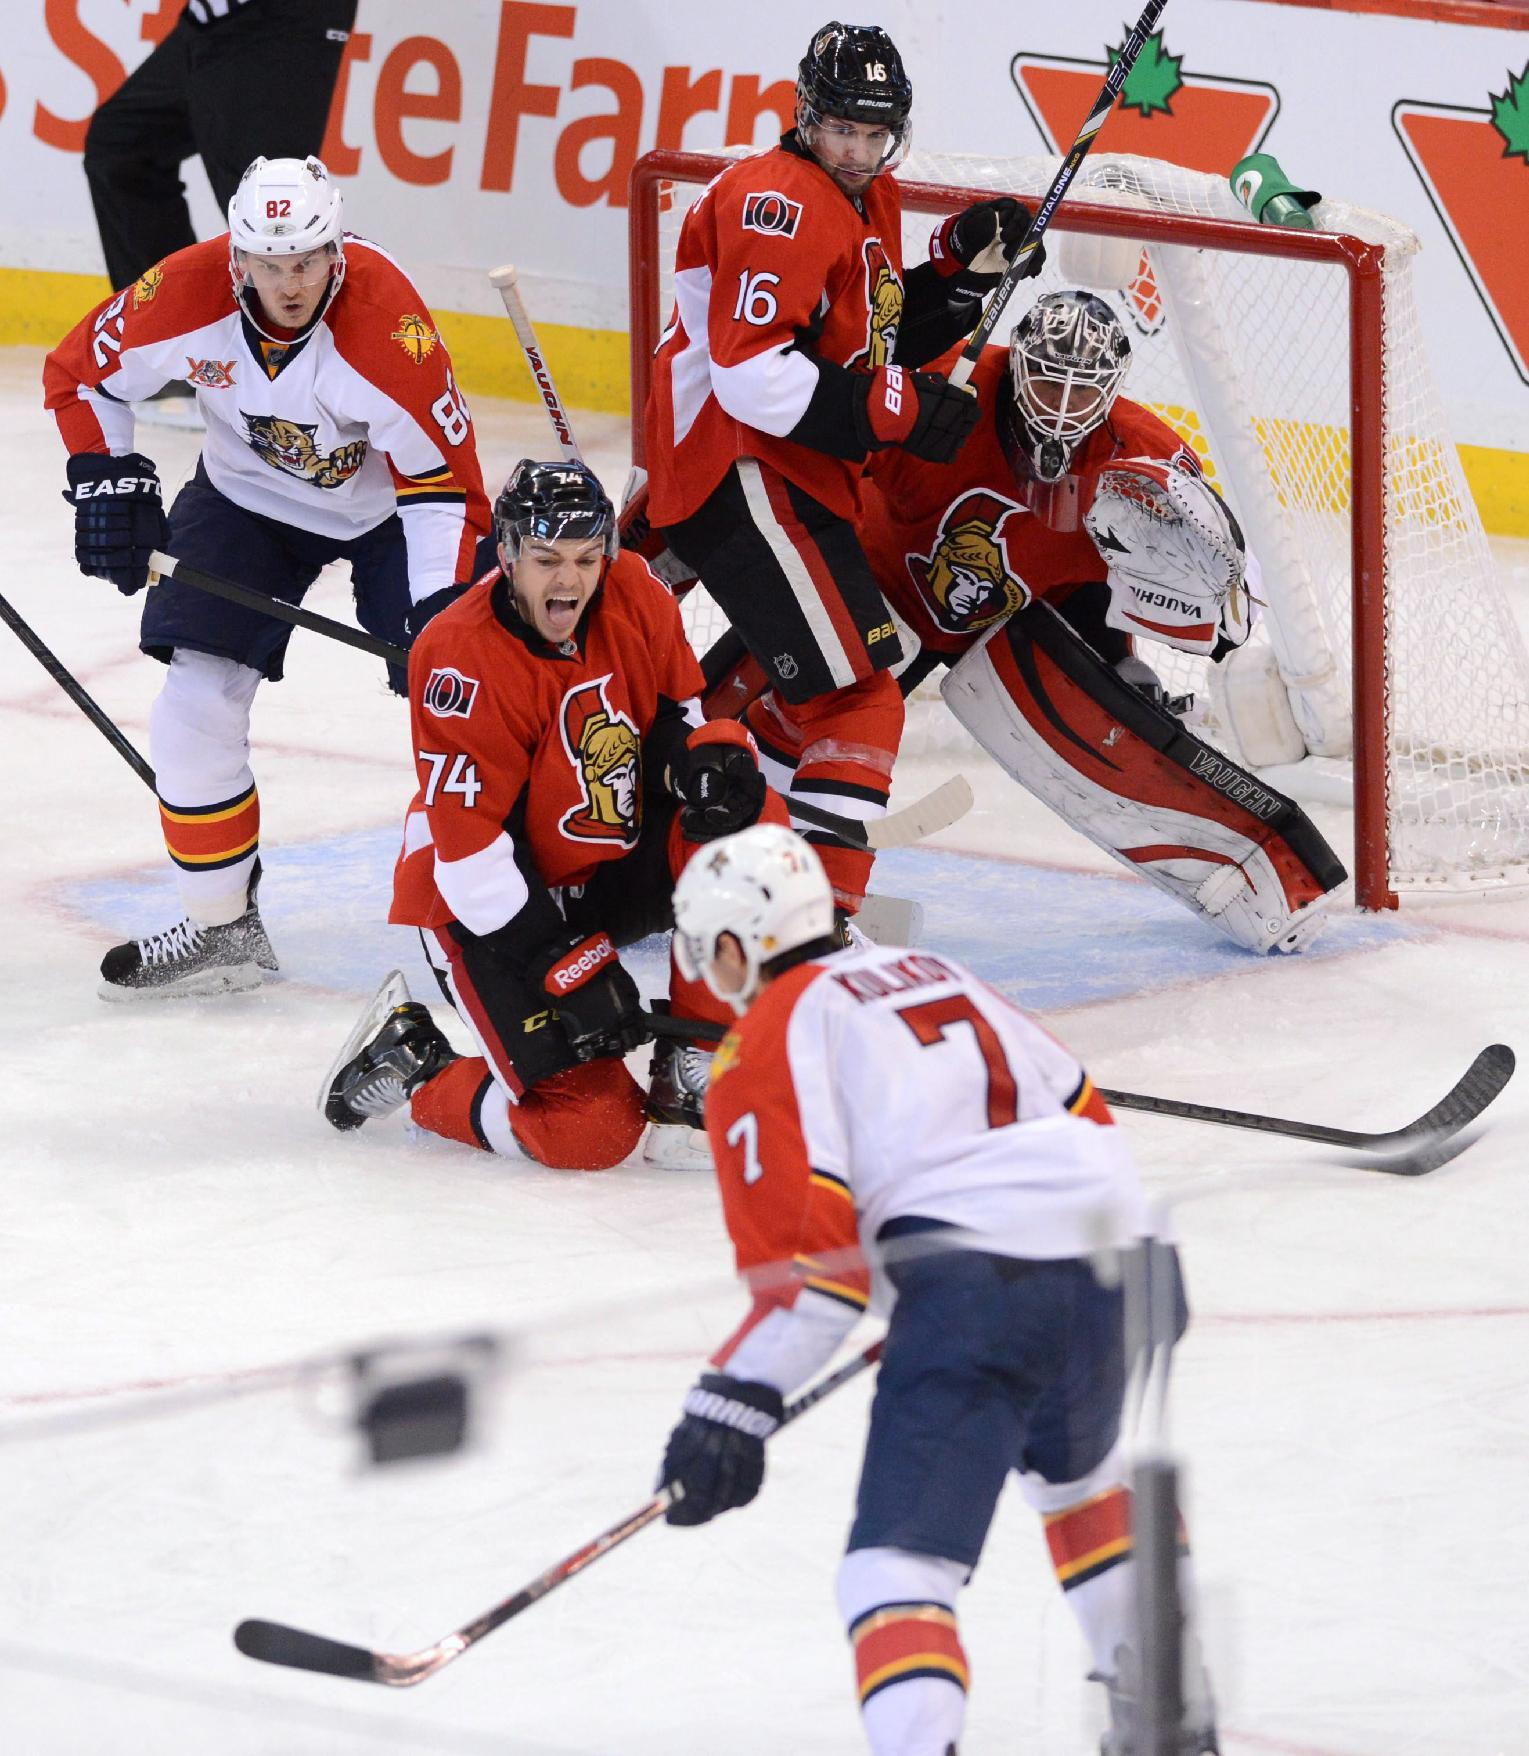 Ottawa Senators' Mark Borowiecki (74) drops to a knee as he attempts to block a shot from Florida Panthers' Dmitry Kulikov during the third period of an NHL hockey game in Ottawa, Ontario, on Saturday, Nov. 9, 2013